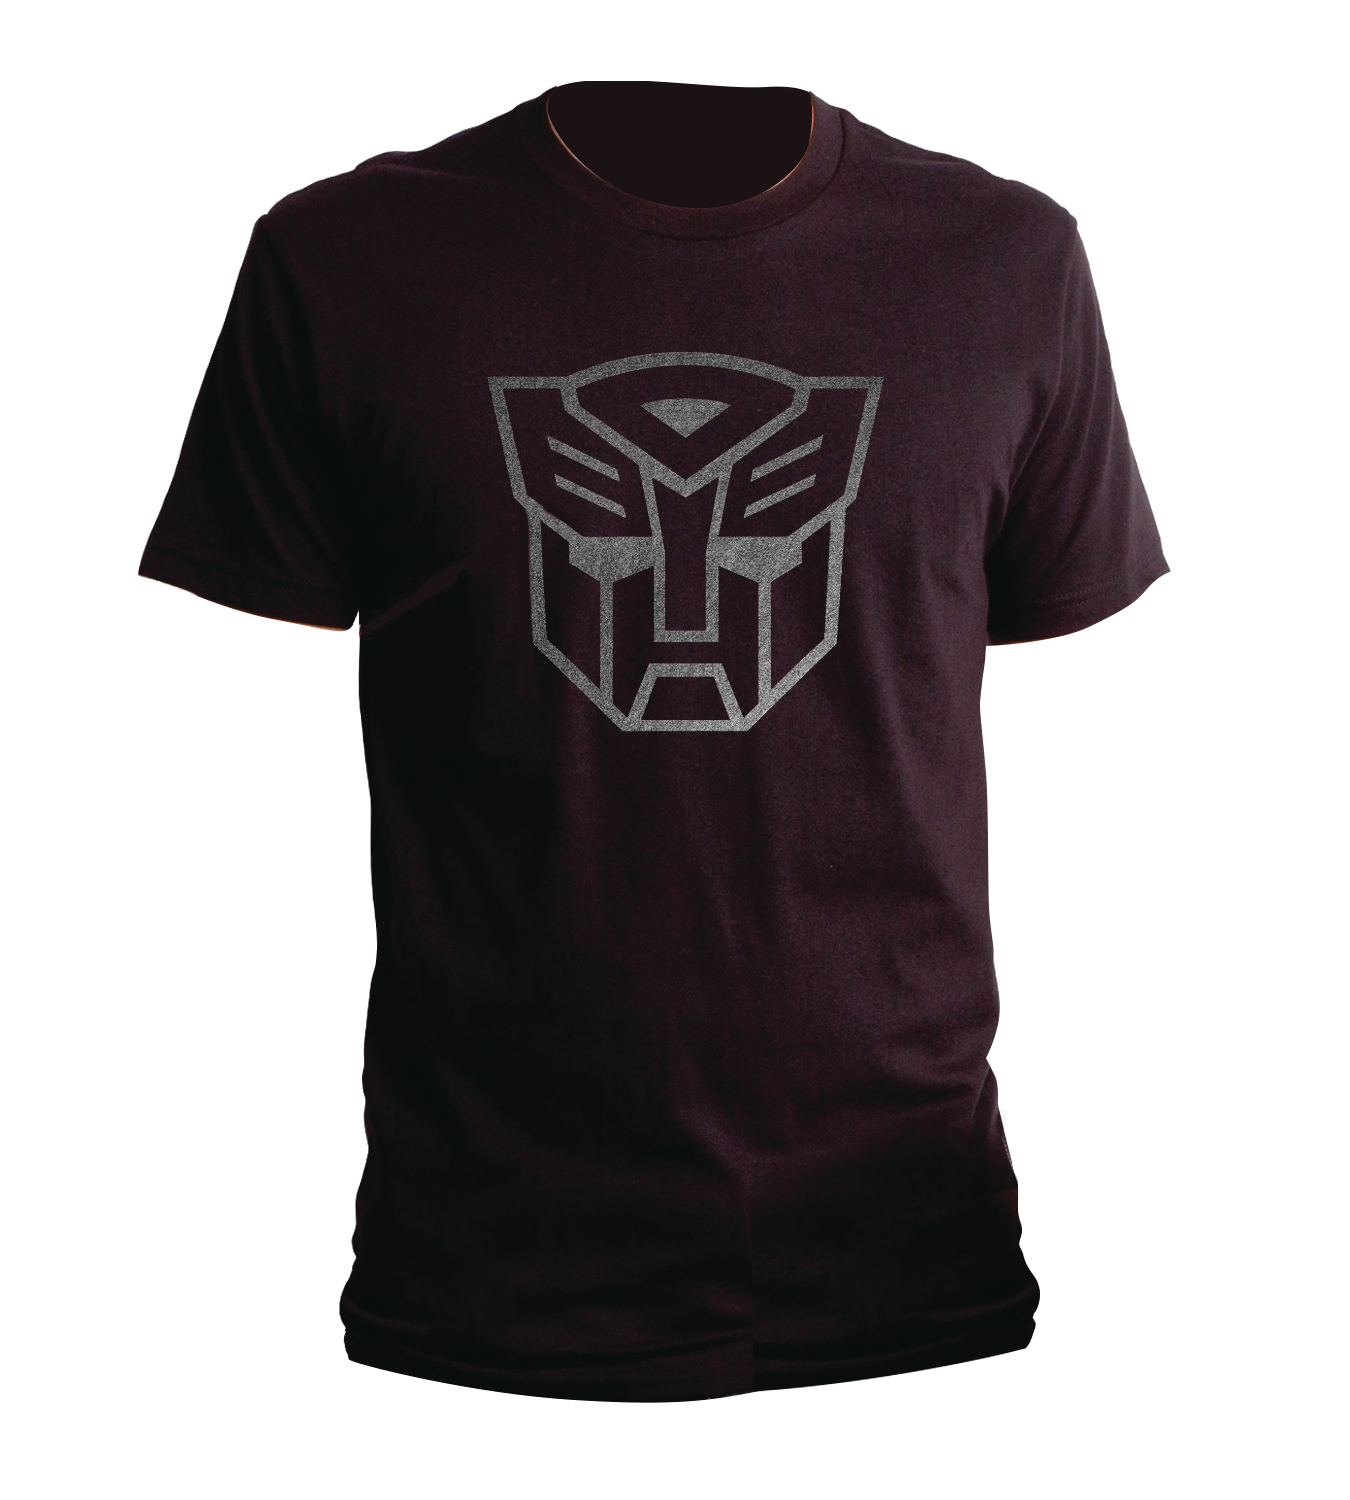 TRANSFORMERS AUTOBOTS REFLECTIVE LOGO T/S MED